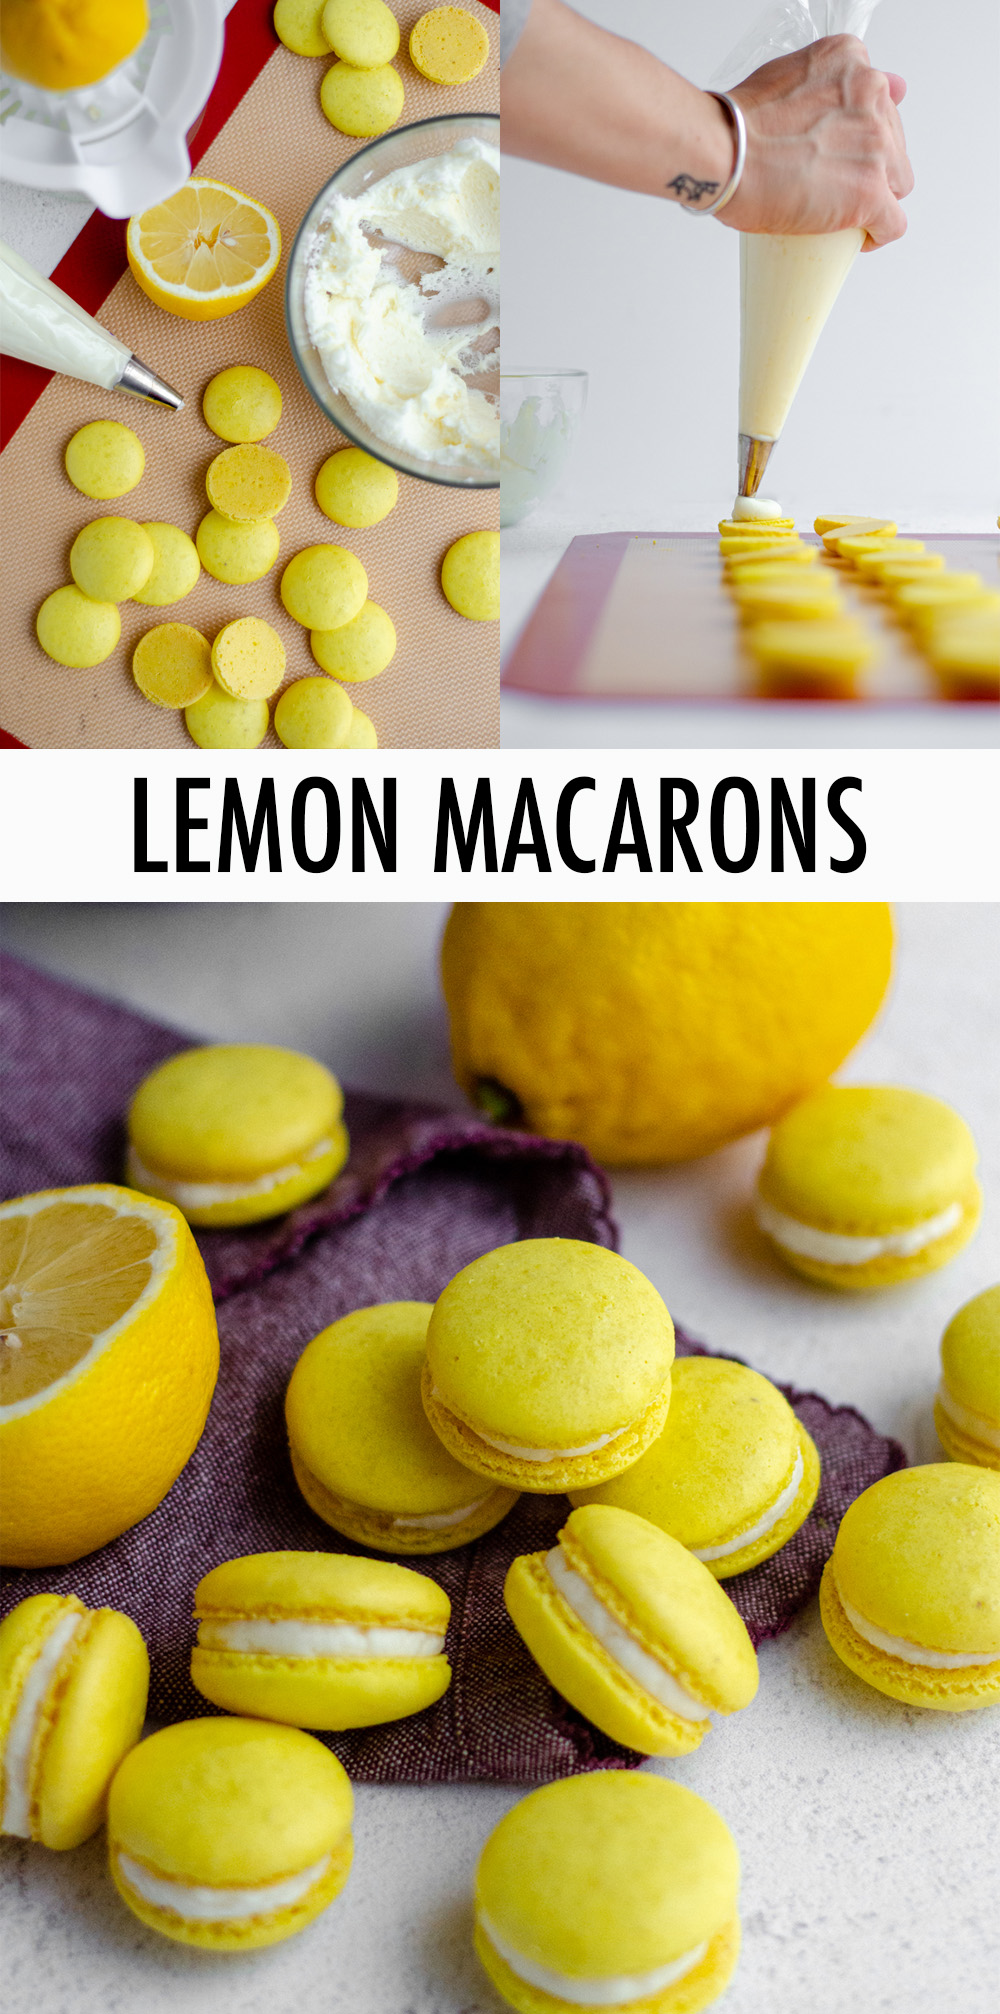 These sweet and tart lemon macarons are filled with a tangy lemon buttercream. The lemon French macarons feature actual lemon zest as well as lemon extract to bring all the flavor without sacrificing that light and airy macaron texture.